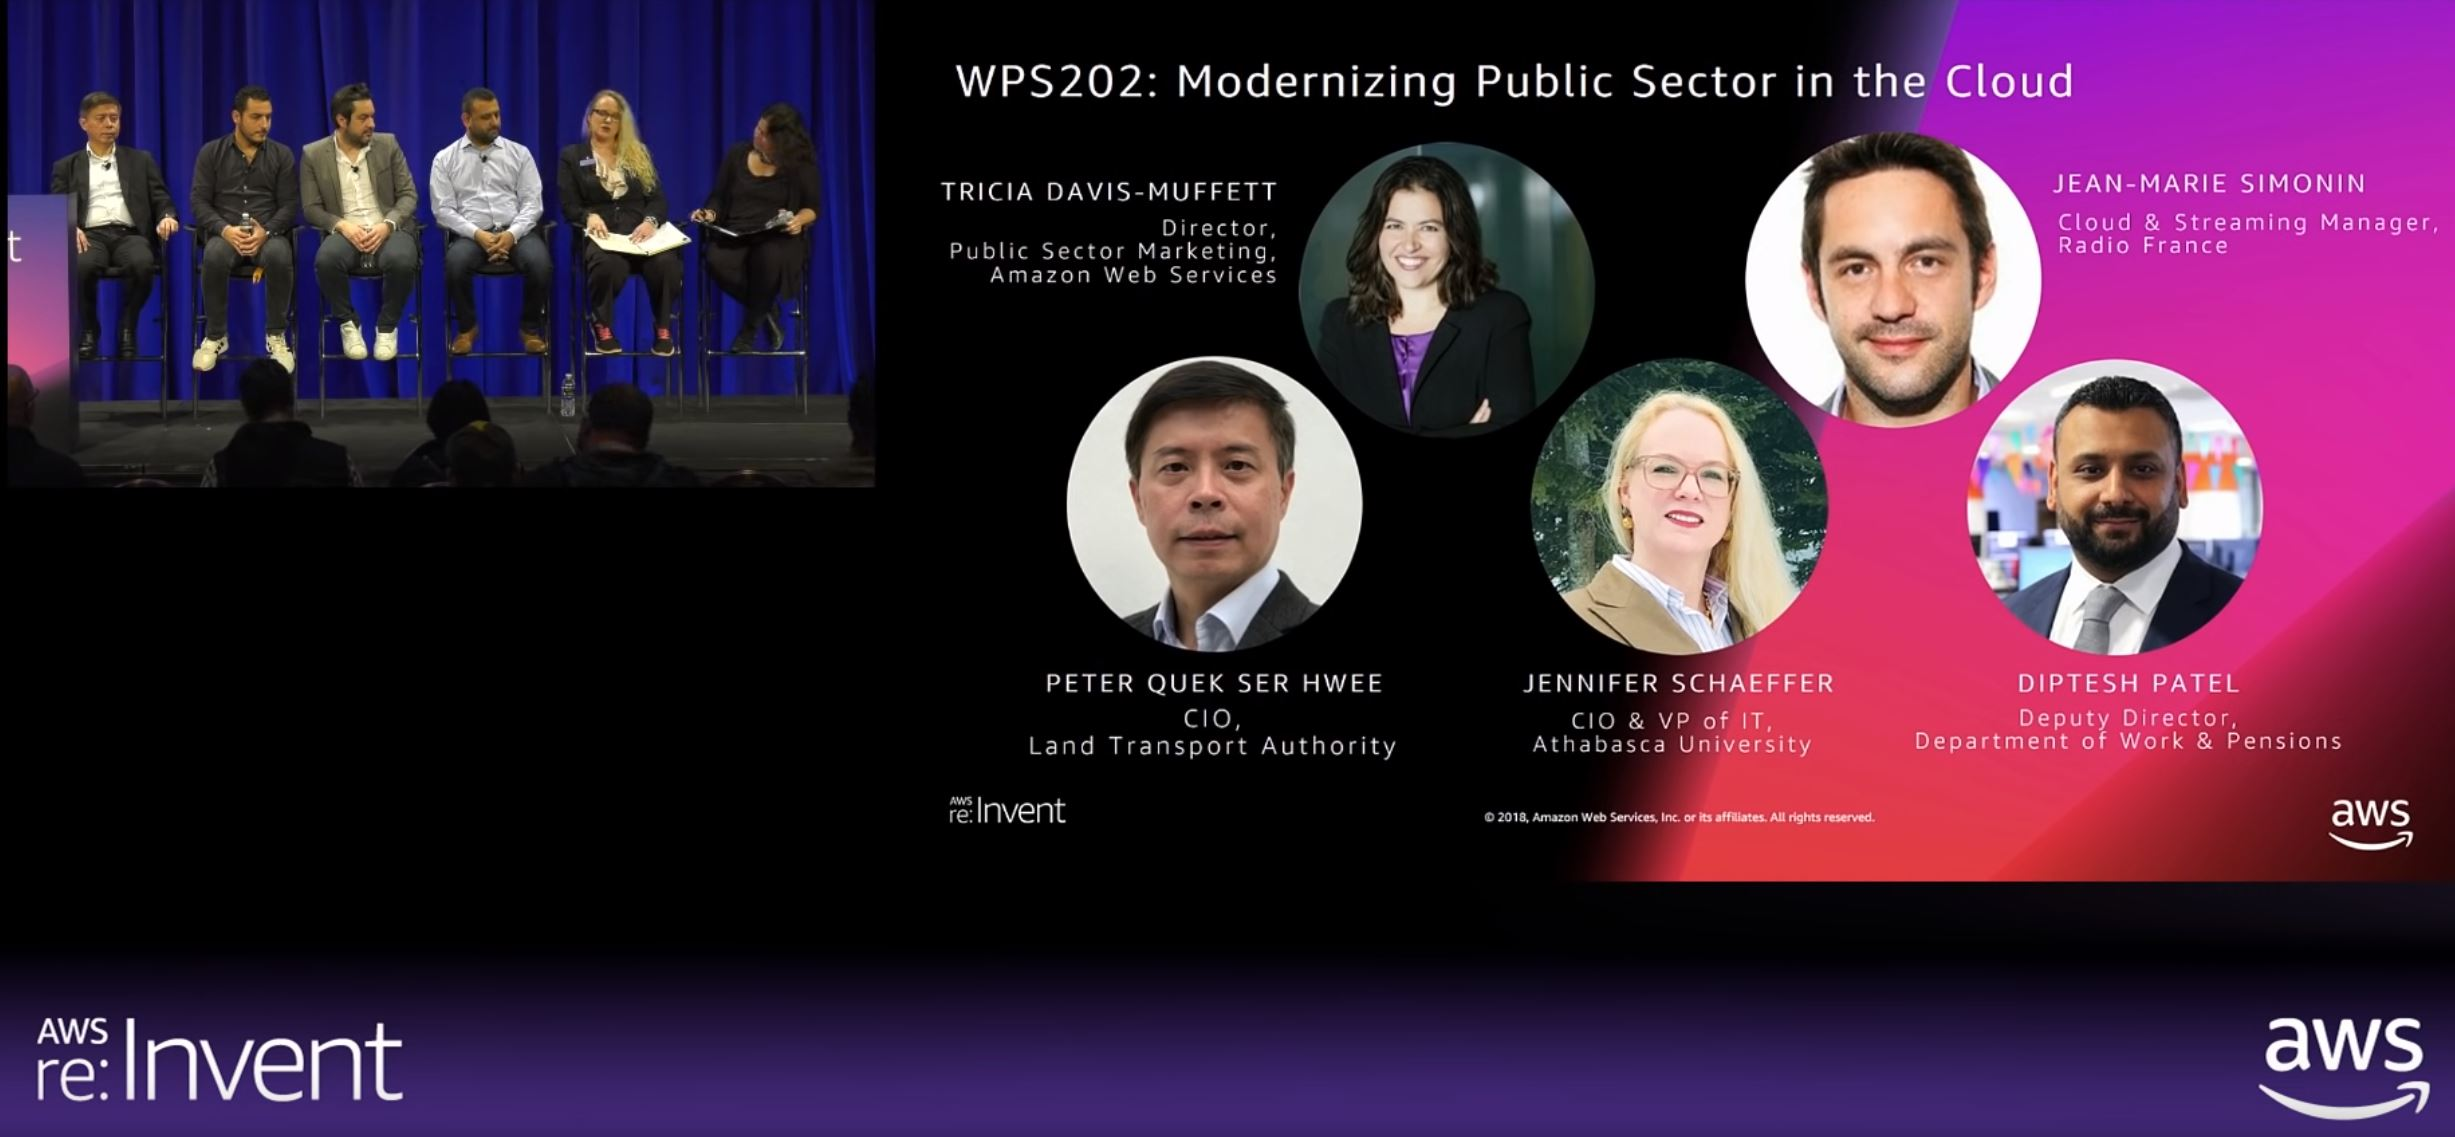 Jennifer-Schaeffer on Modernizing Public Sector panel - AWS ReInvent